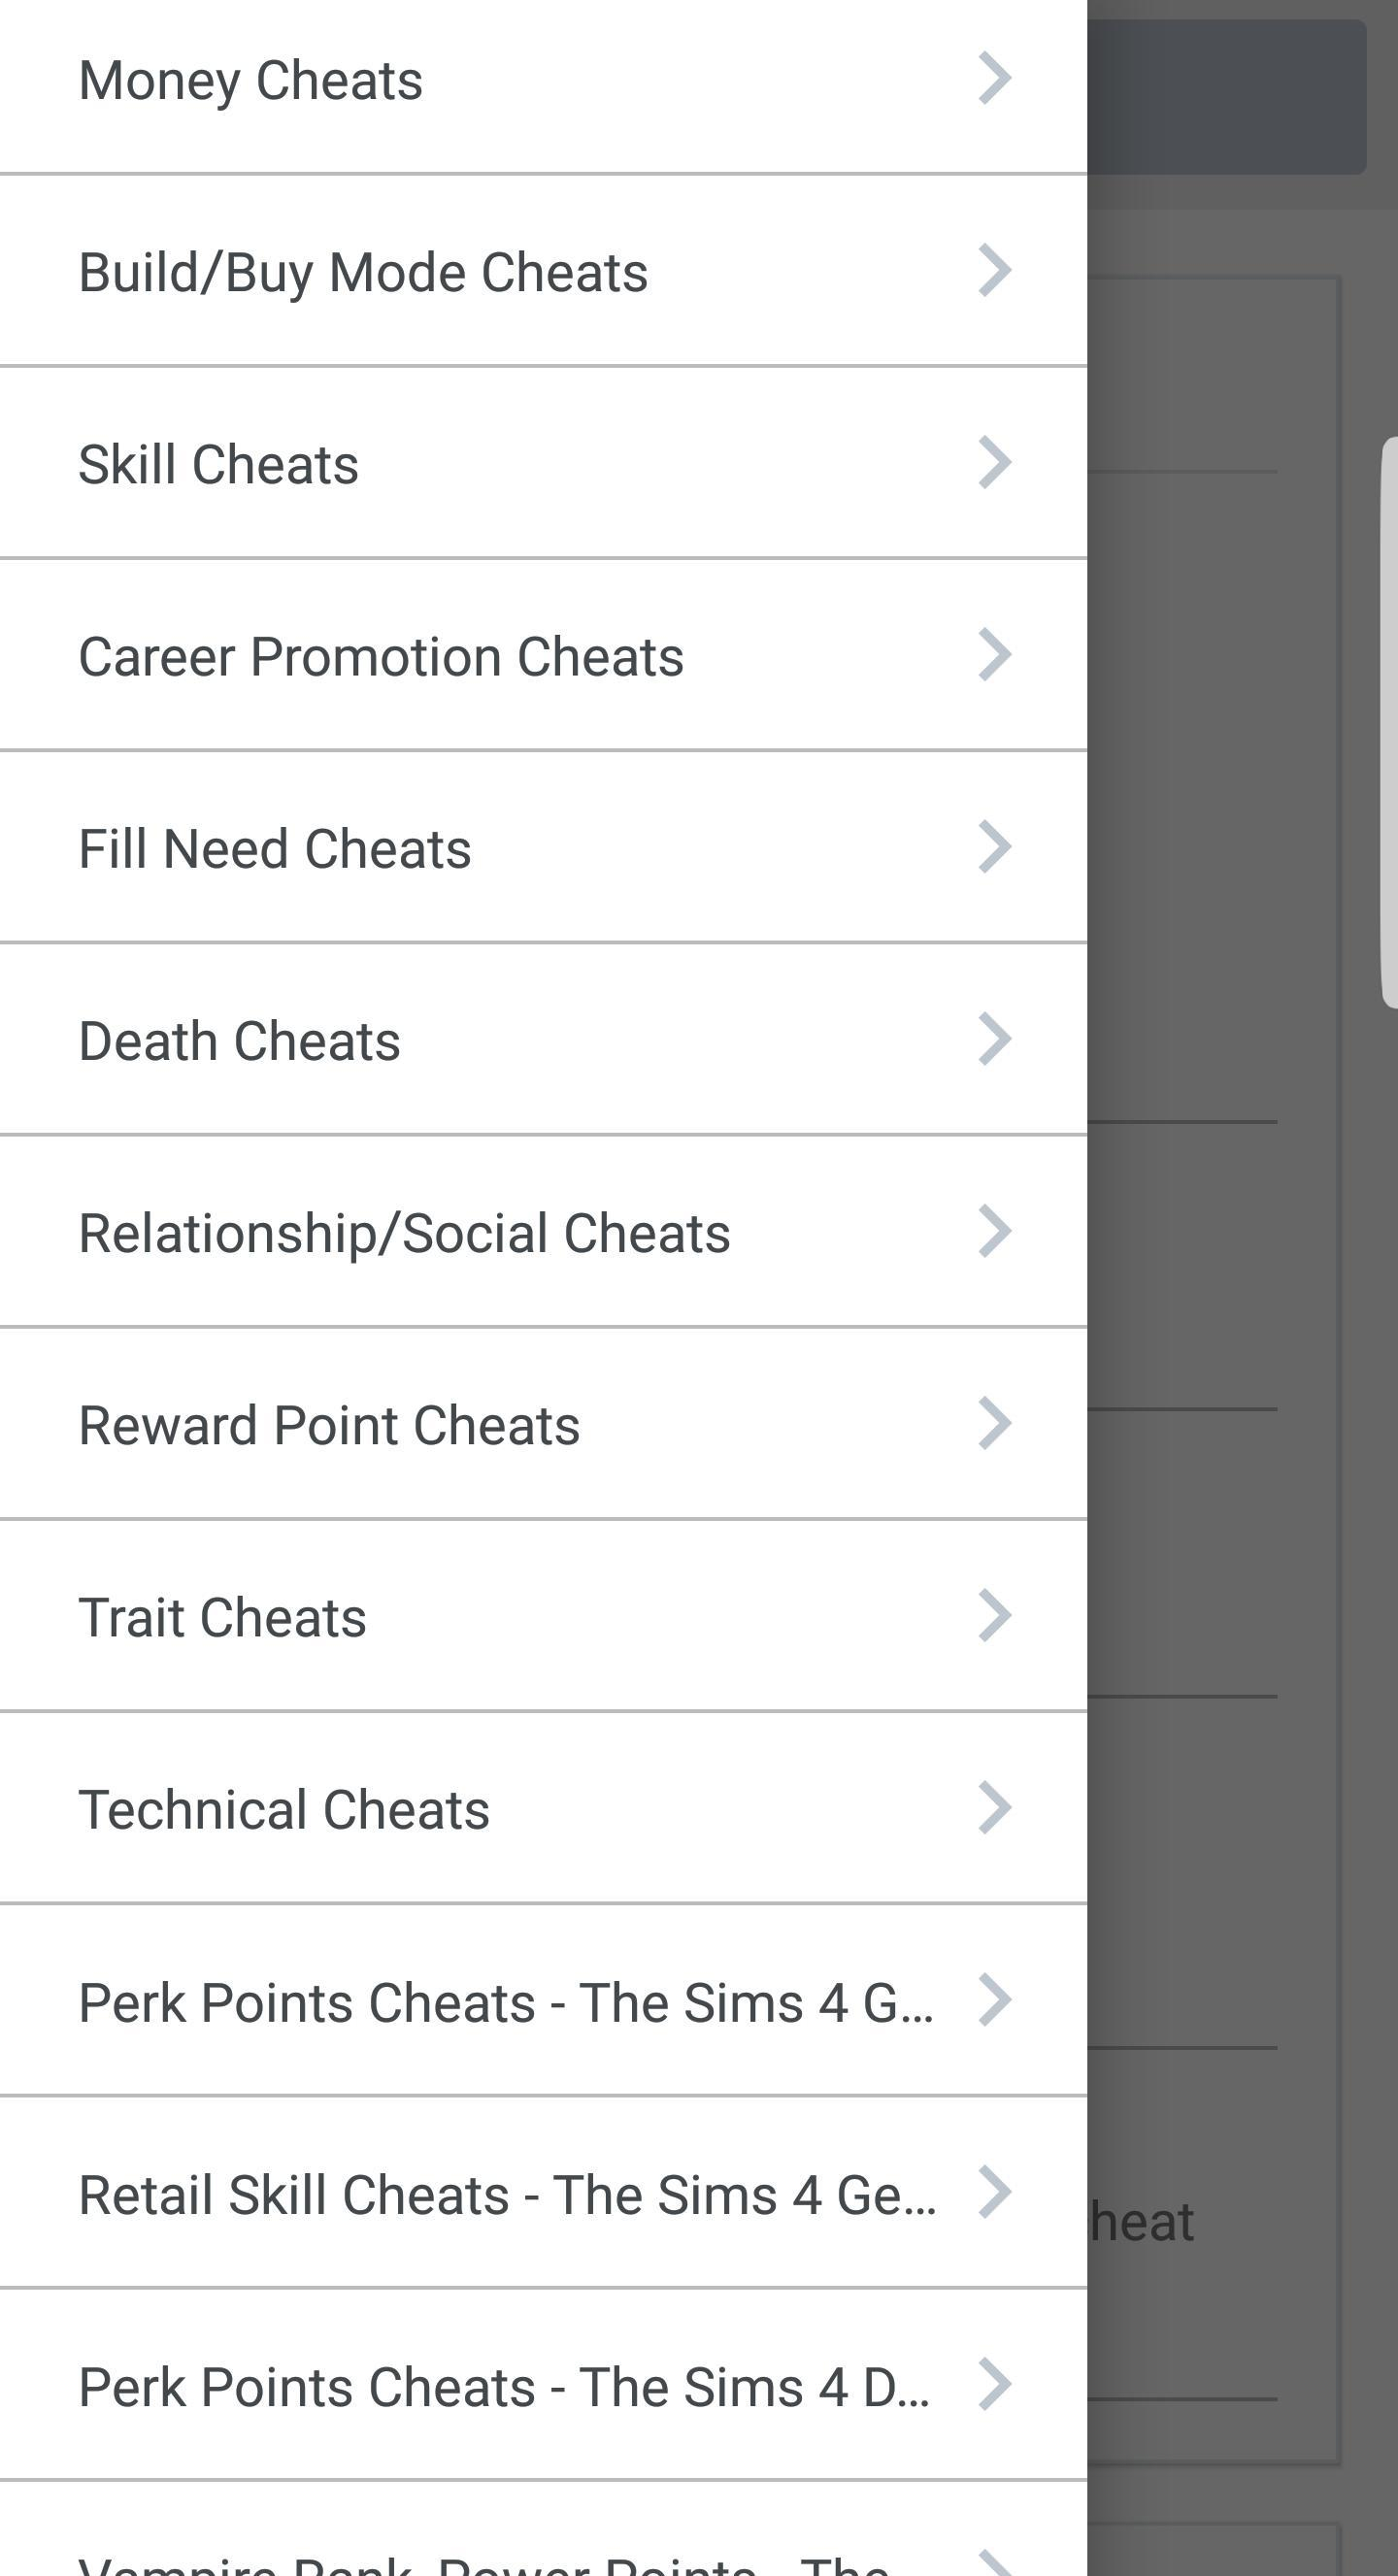 The Sims 4 Cheats for Android - APK Download